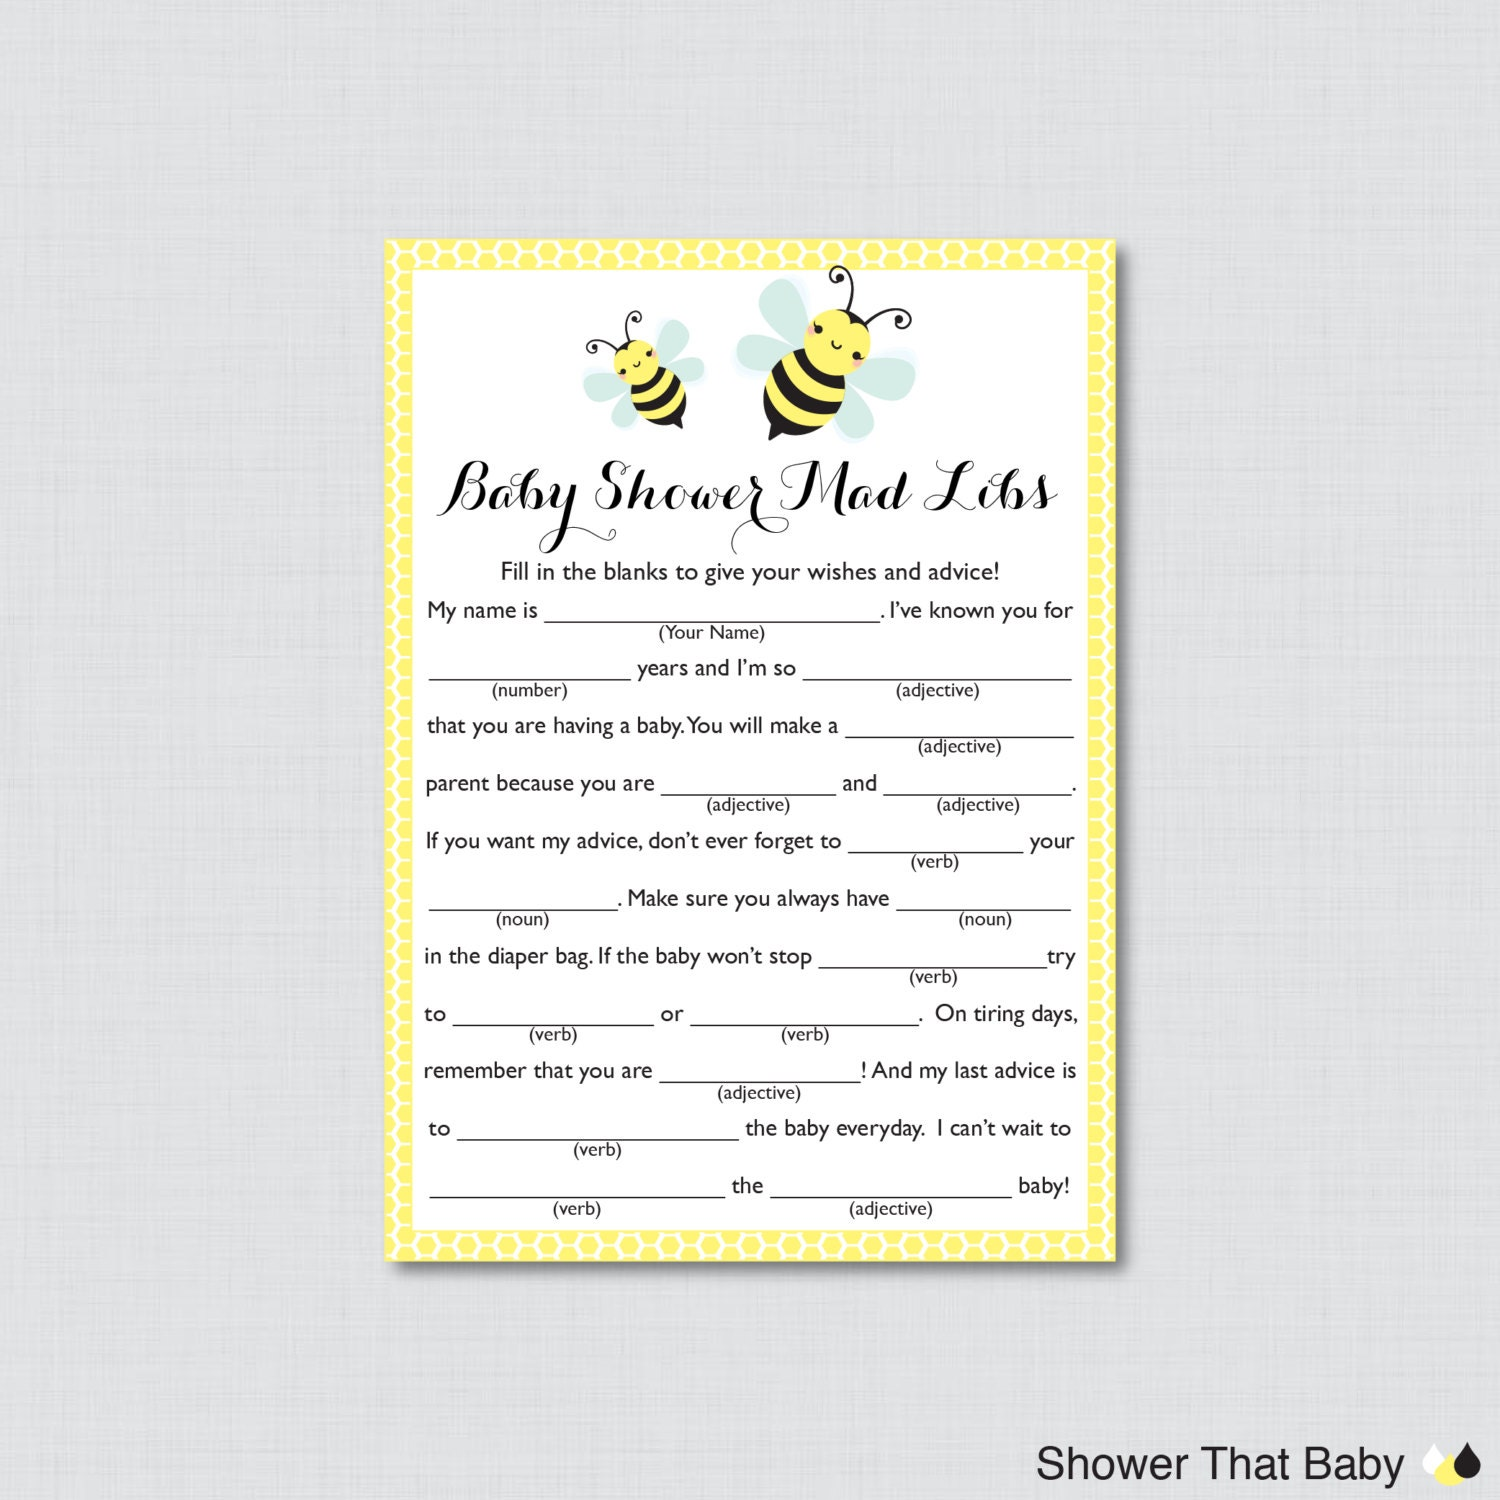 Bumble Bee Baby Shower Mad Libs Printable Baby Shower Advice